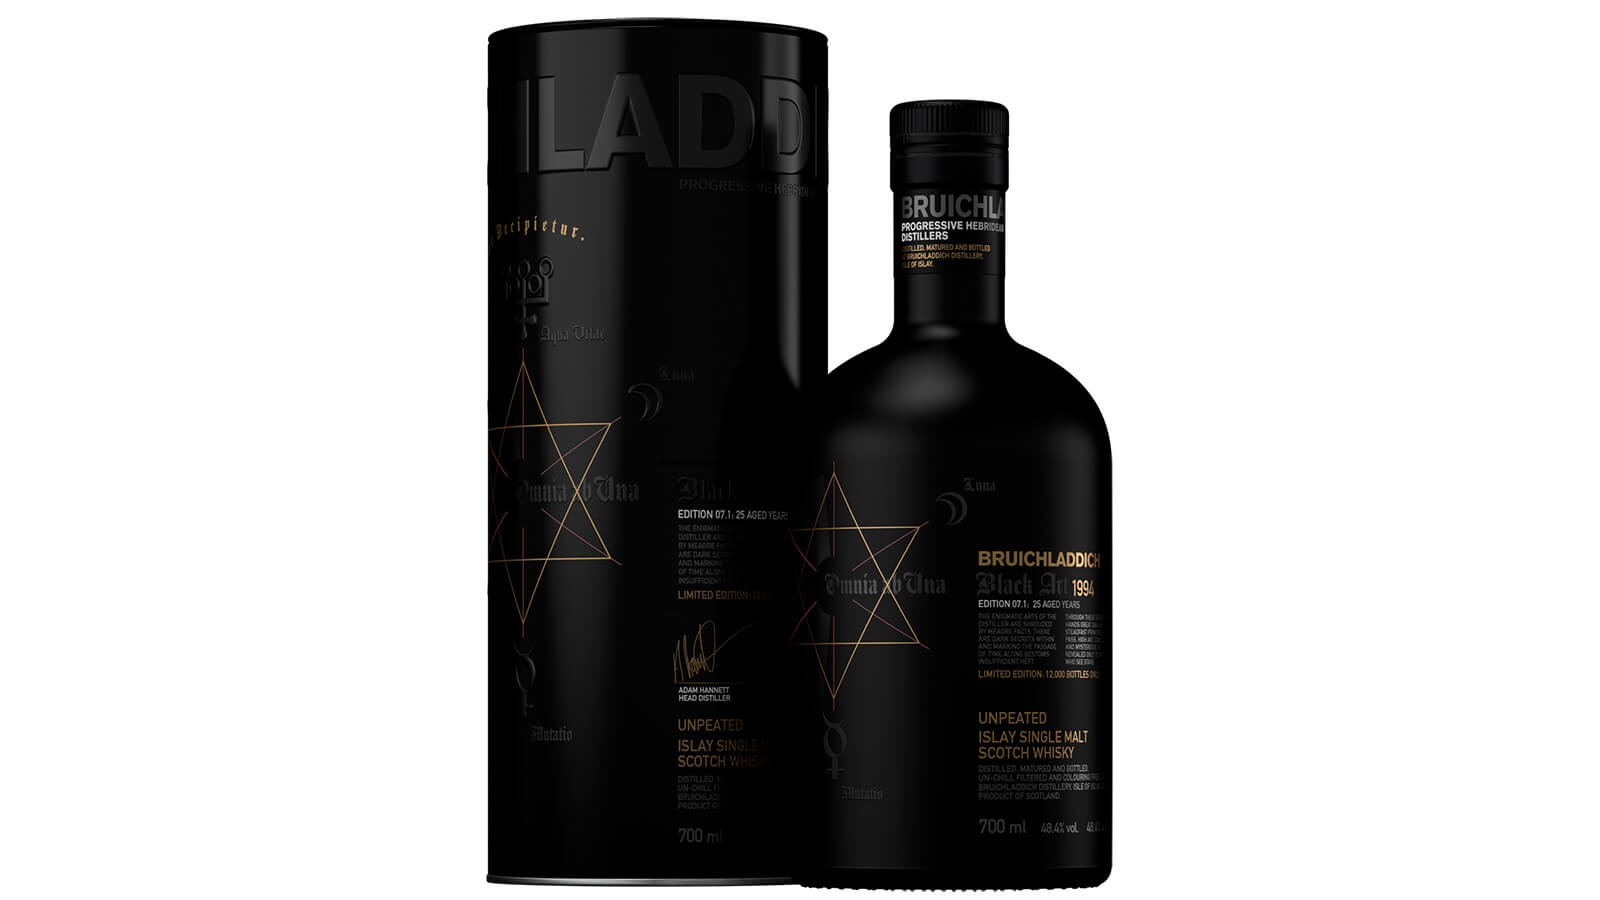 Bruichladdich Launched Latest Black Art 1994 Edition 8.1